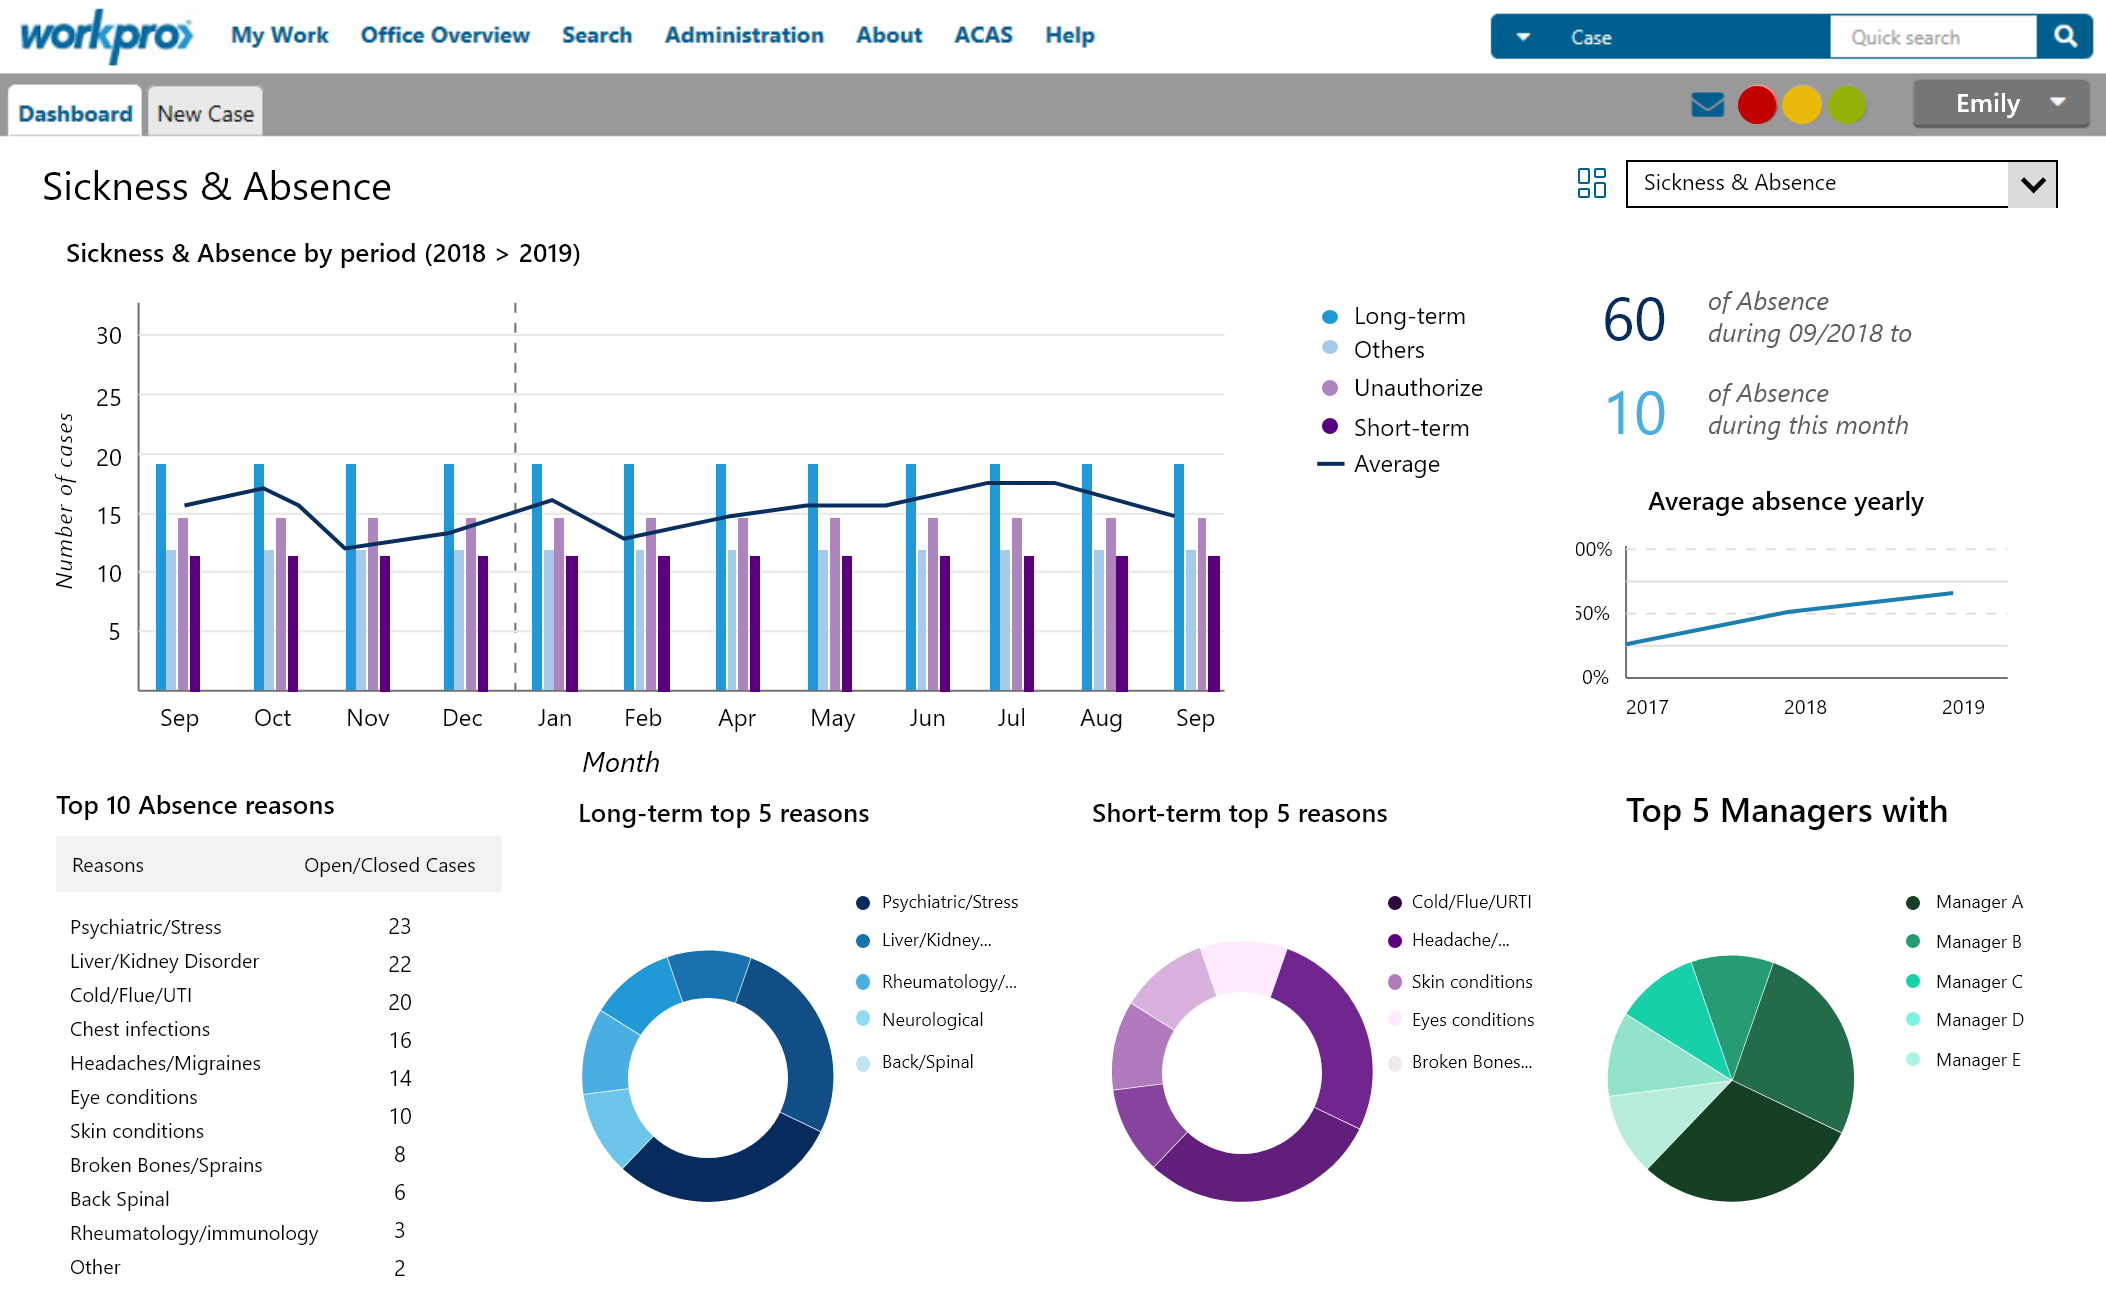 Sickness and Absence Case Tracking Dashboard